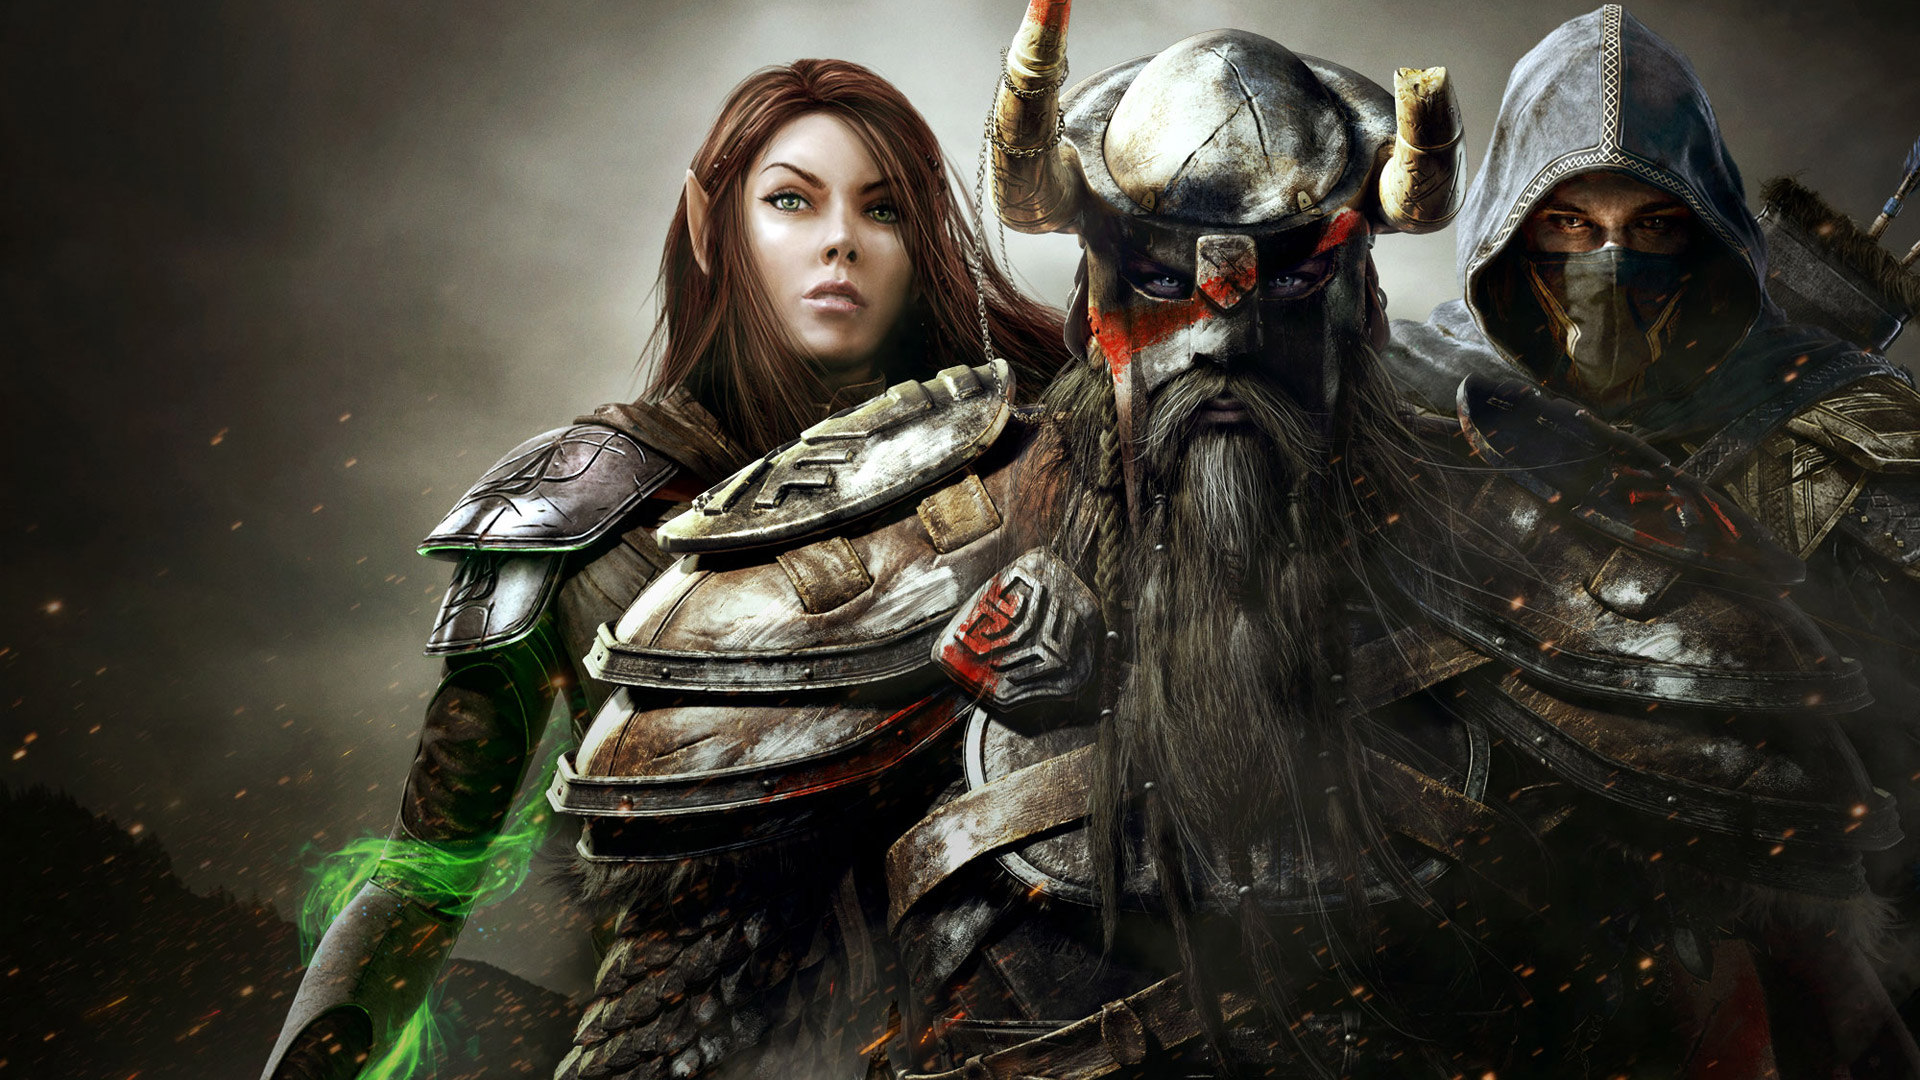 132 The Elder Scrolls Online HD Wallpapers | Backgrounds - Wallpaper Abyss